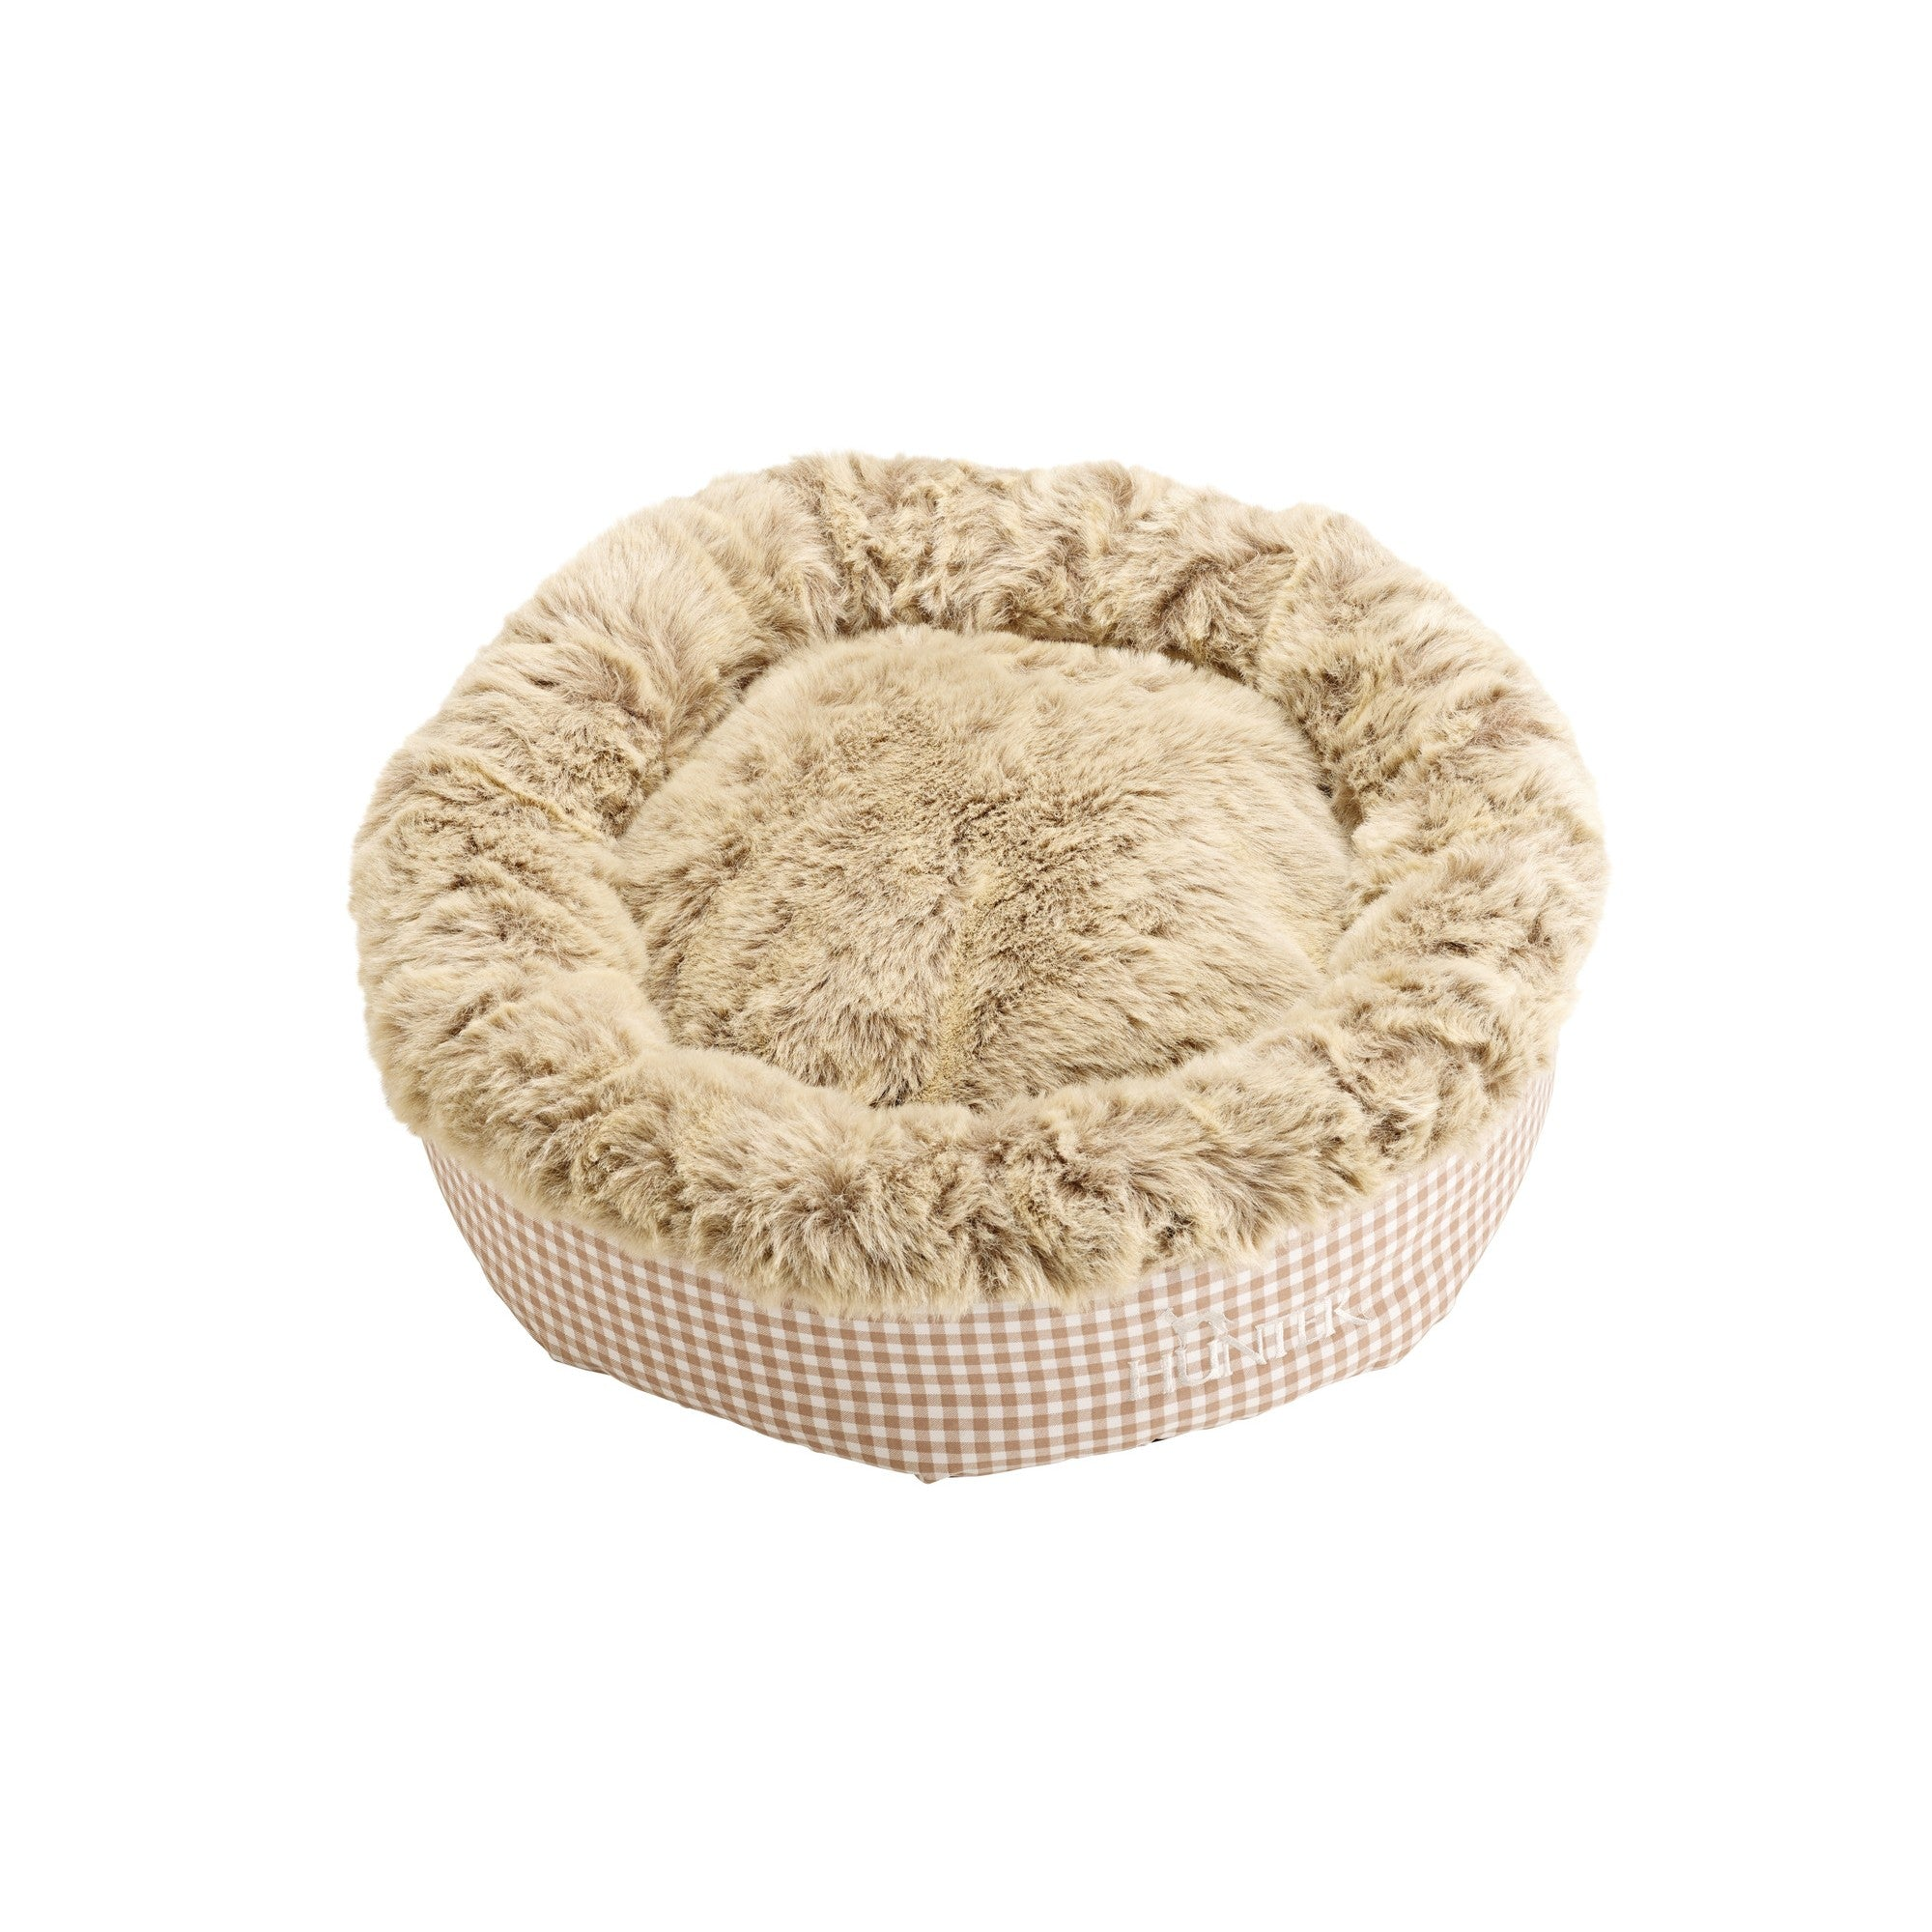 Astana Gingham Round Dog Bed by Hunter - Grey - Fernie's Choice Classic Country Wear for Dogs